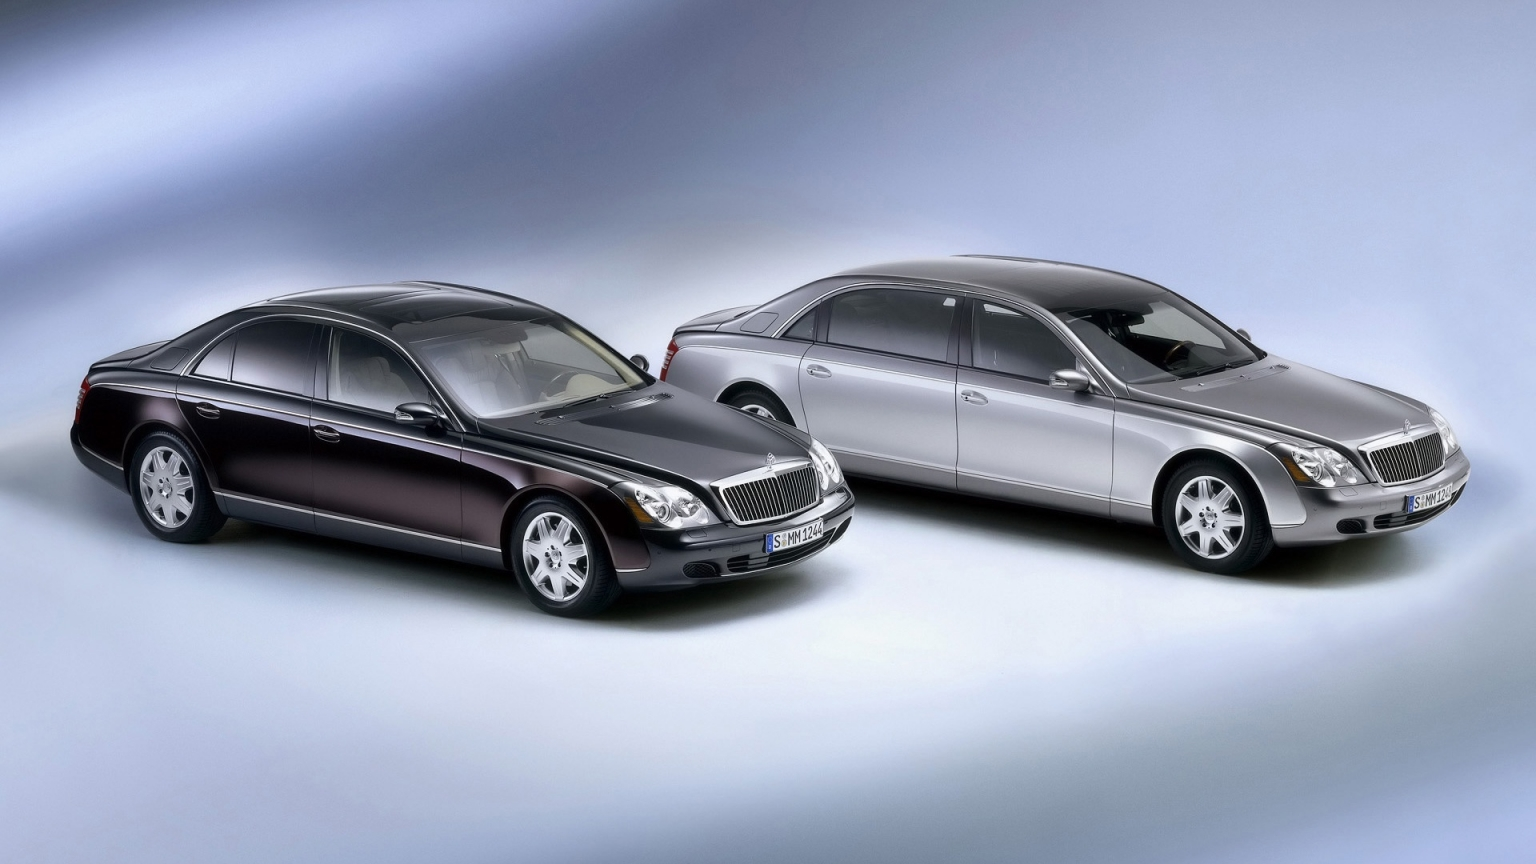 Maybach 62 and 57 Left Front for 1536 x 864 HDTV resolution